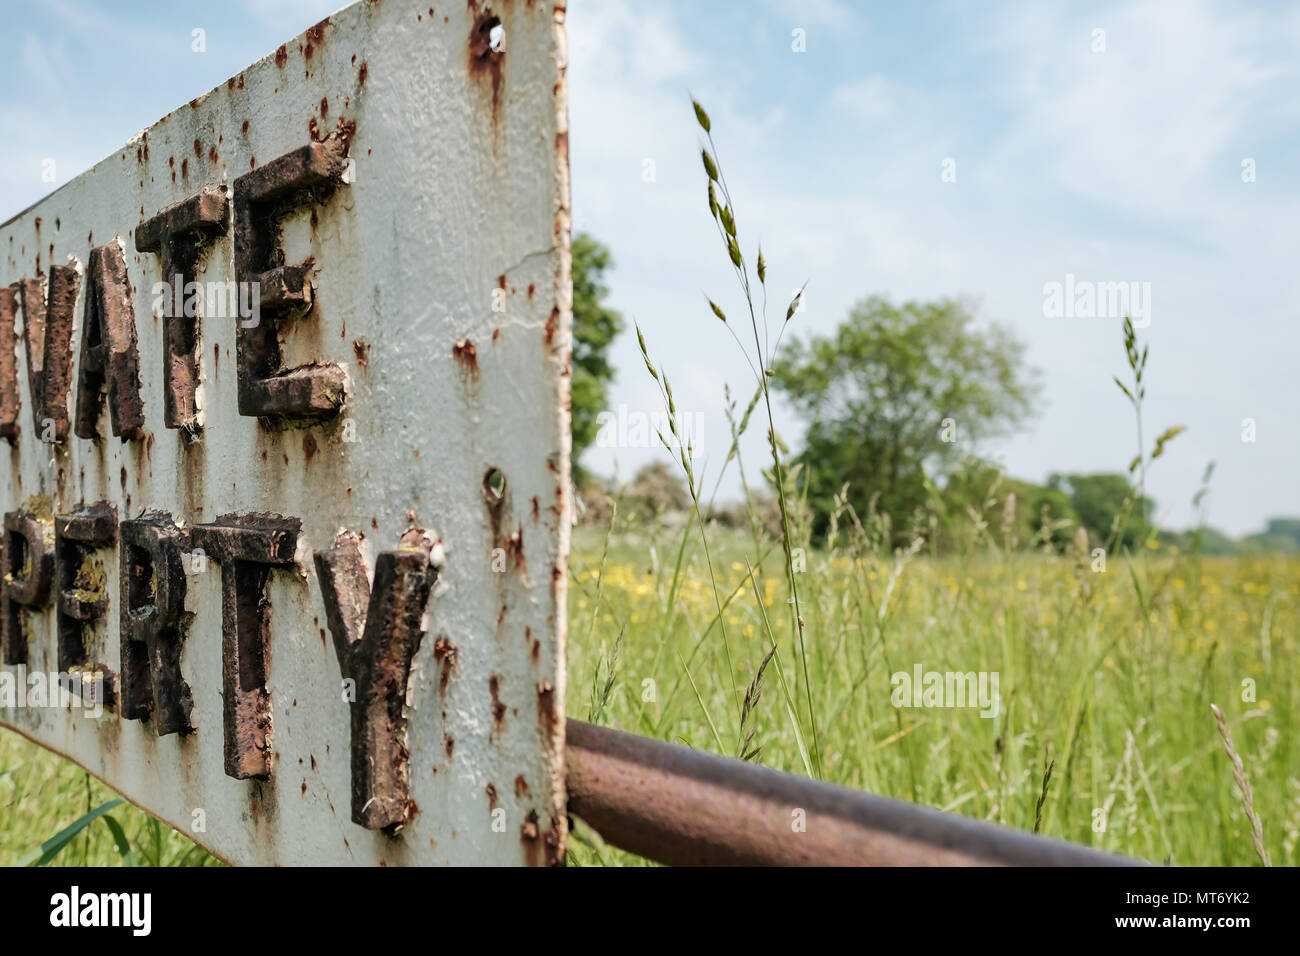 Close-up, abstract image of part of a metal Private Property sign attached to a locked farm gate.  Meadow grass can be seen in the background. Stock Photo